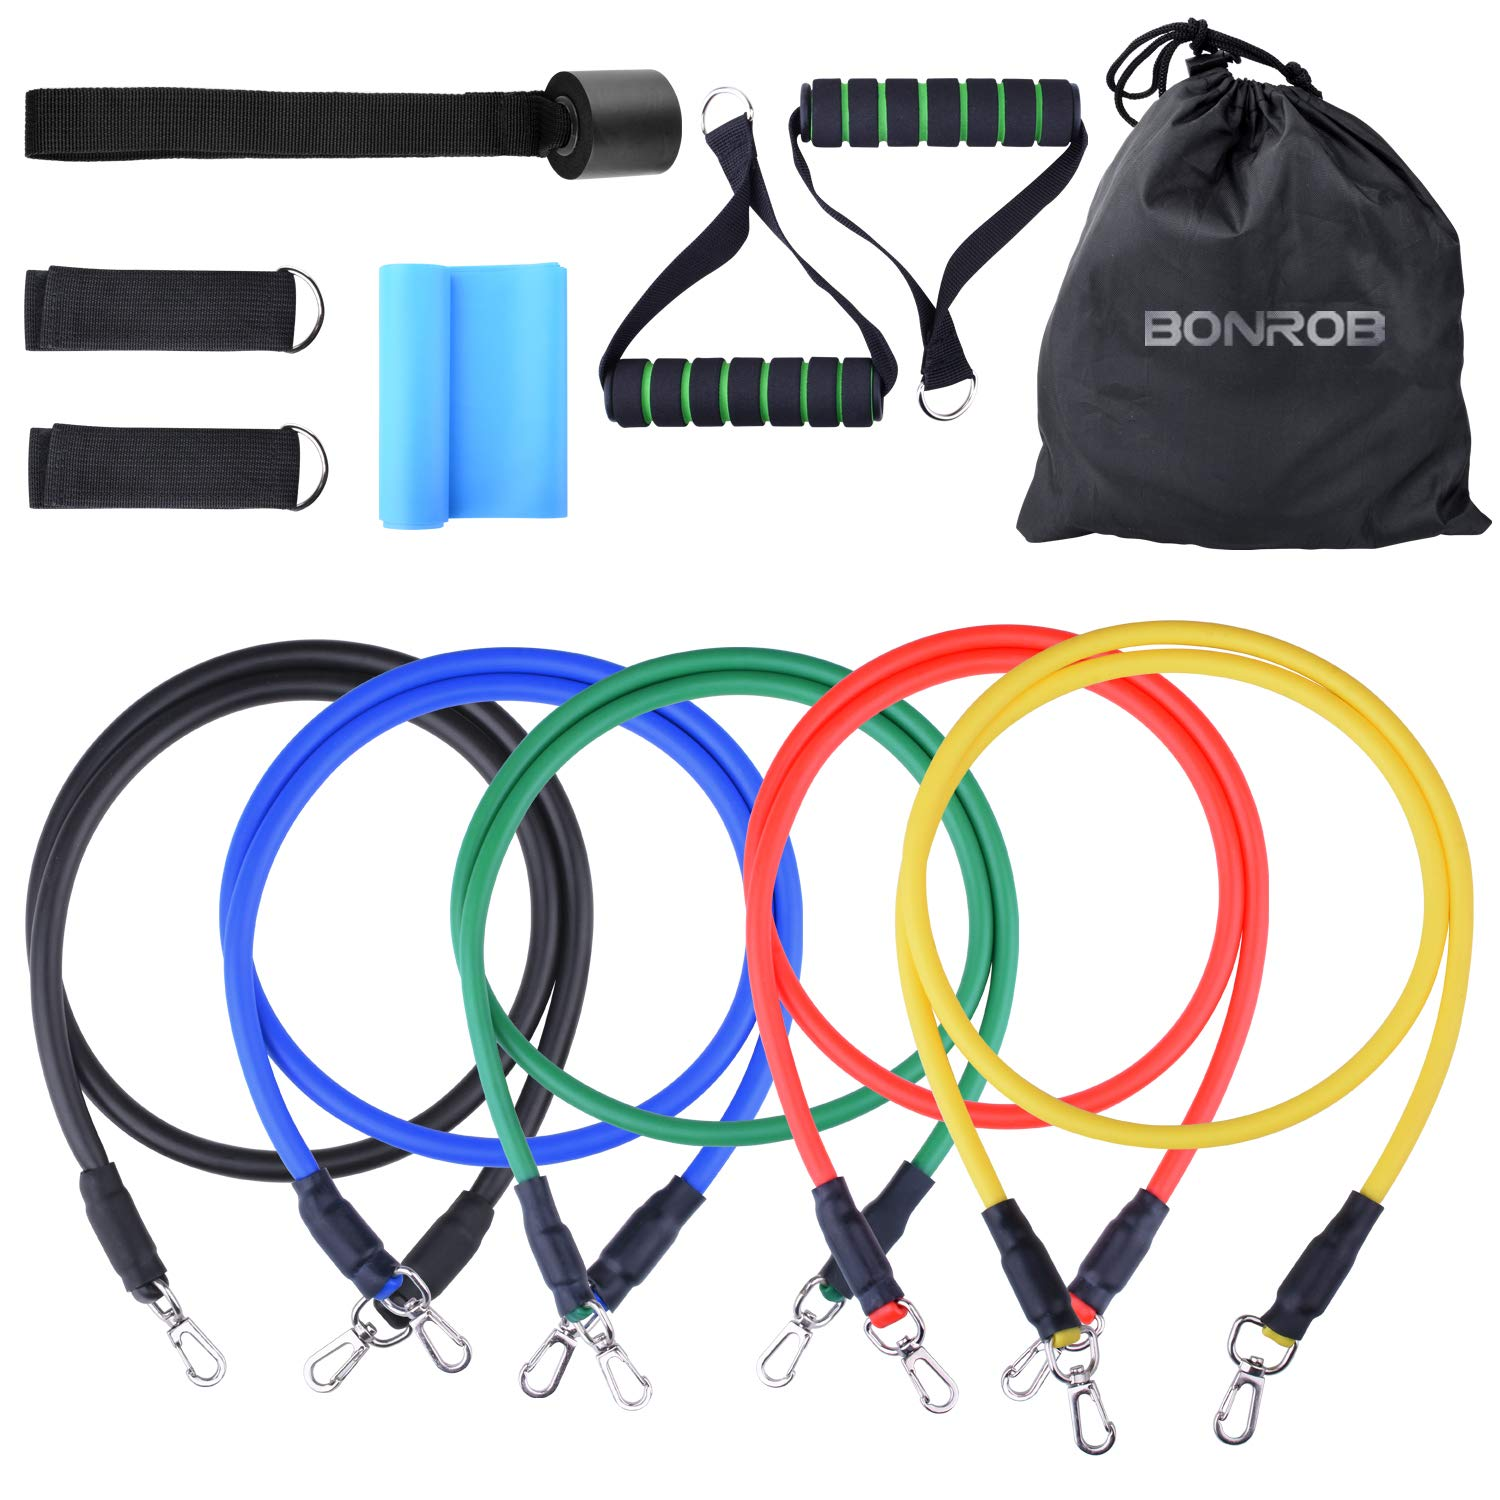 BONROB Resistance Band Set w/ 5 Bands Waterproof Bag Door Anchor Legs Ankle Straps BC007